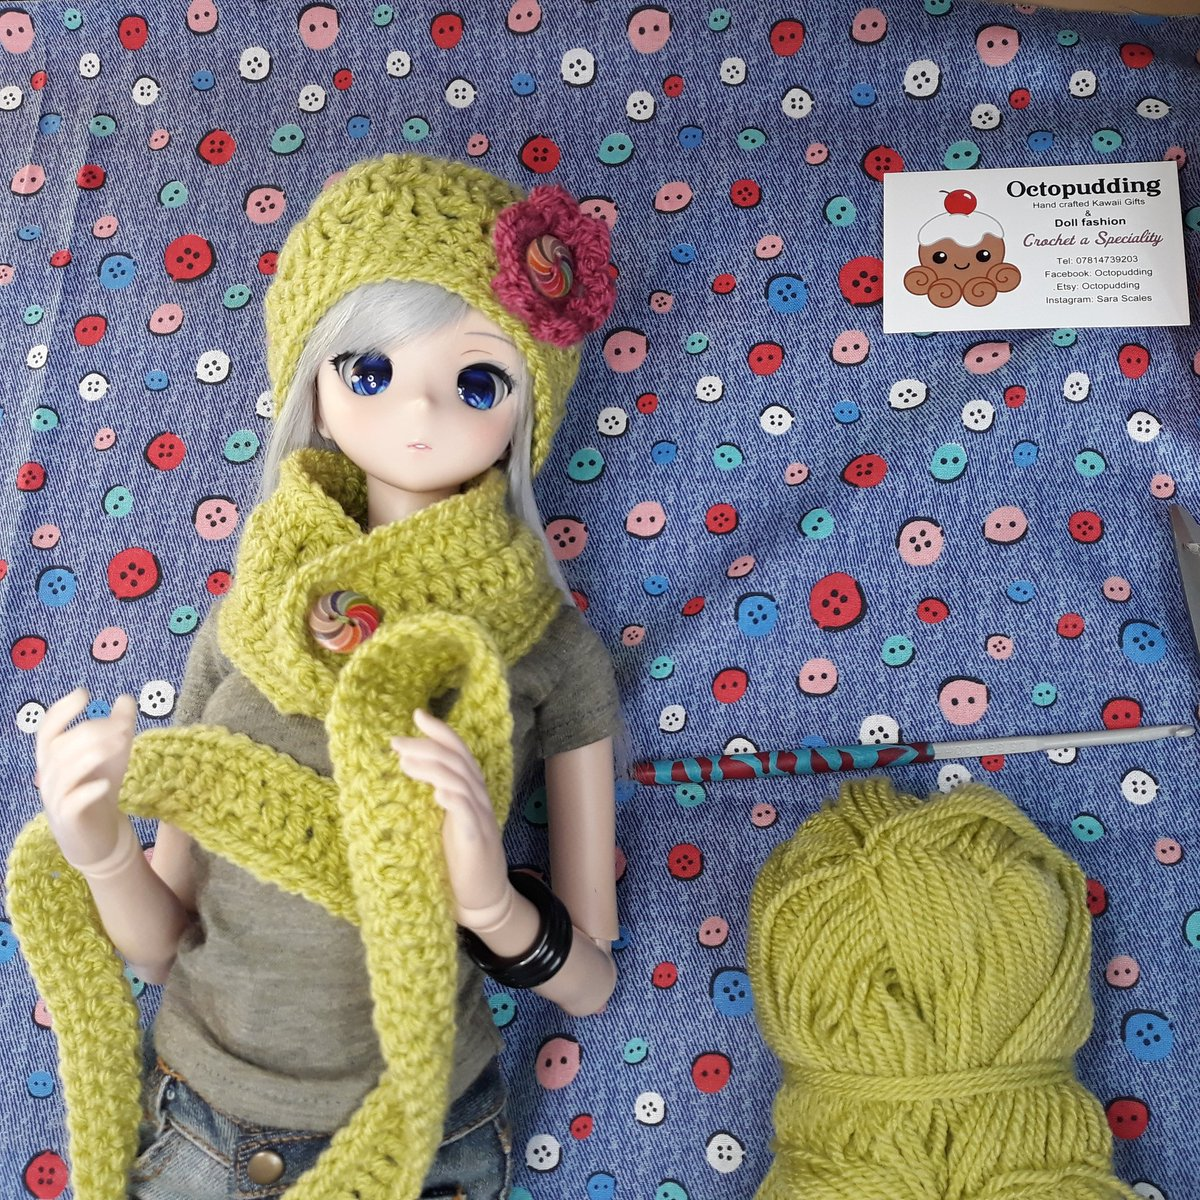 Crochet doll scarf and beanie tutorial and free pattern | Crochet ... | 1200x1200